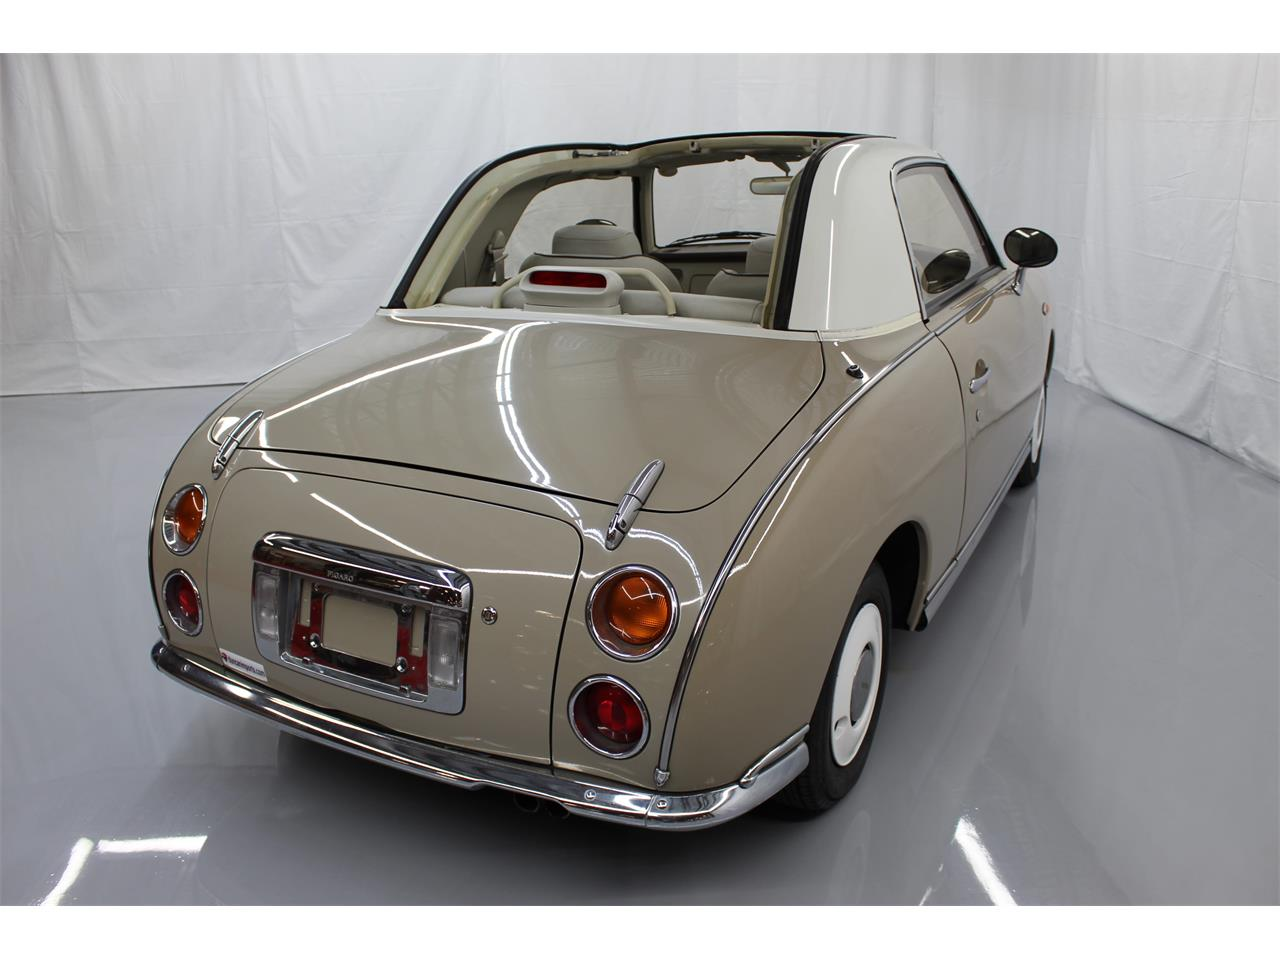 1991 Nissan Figaro for sale in Christiansburg, VA – photo 15